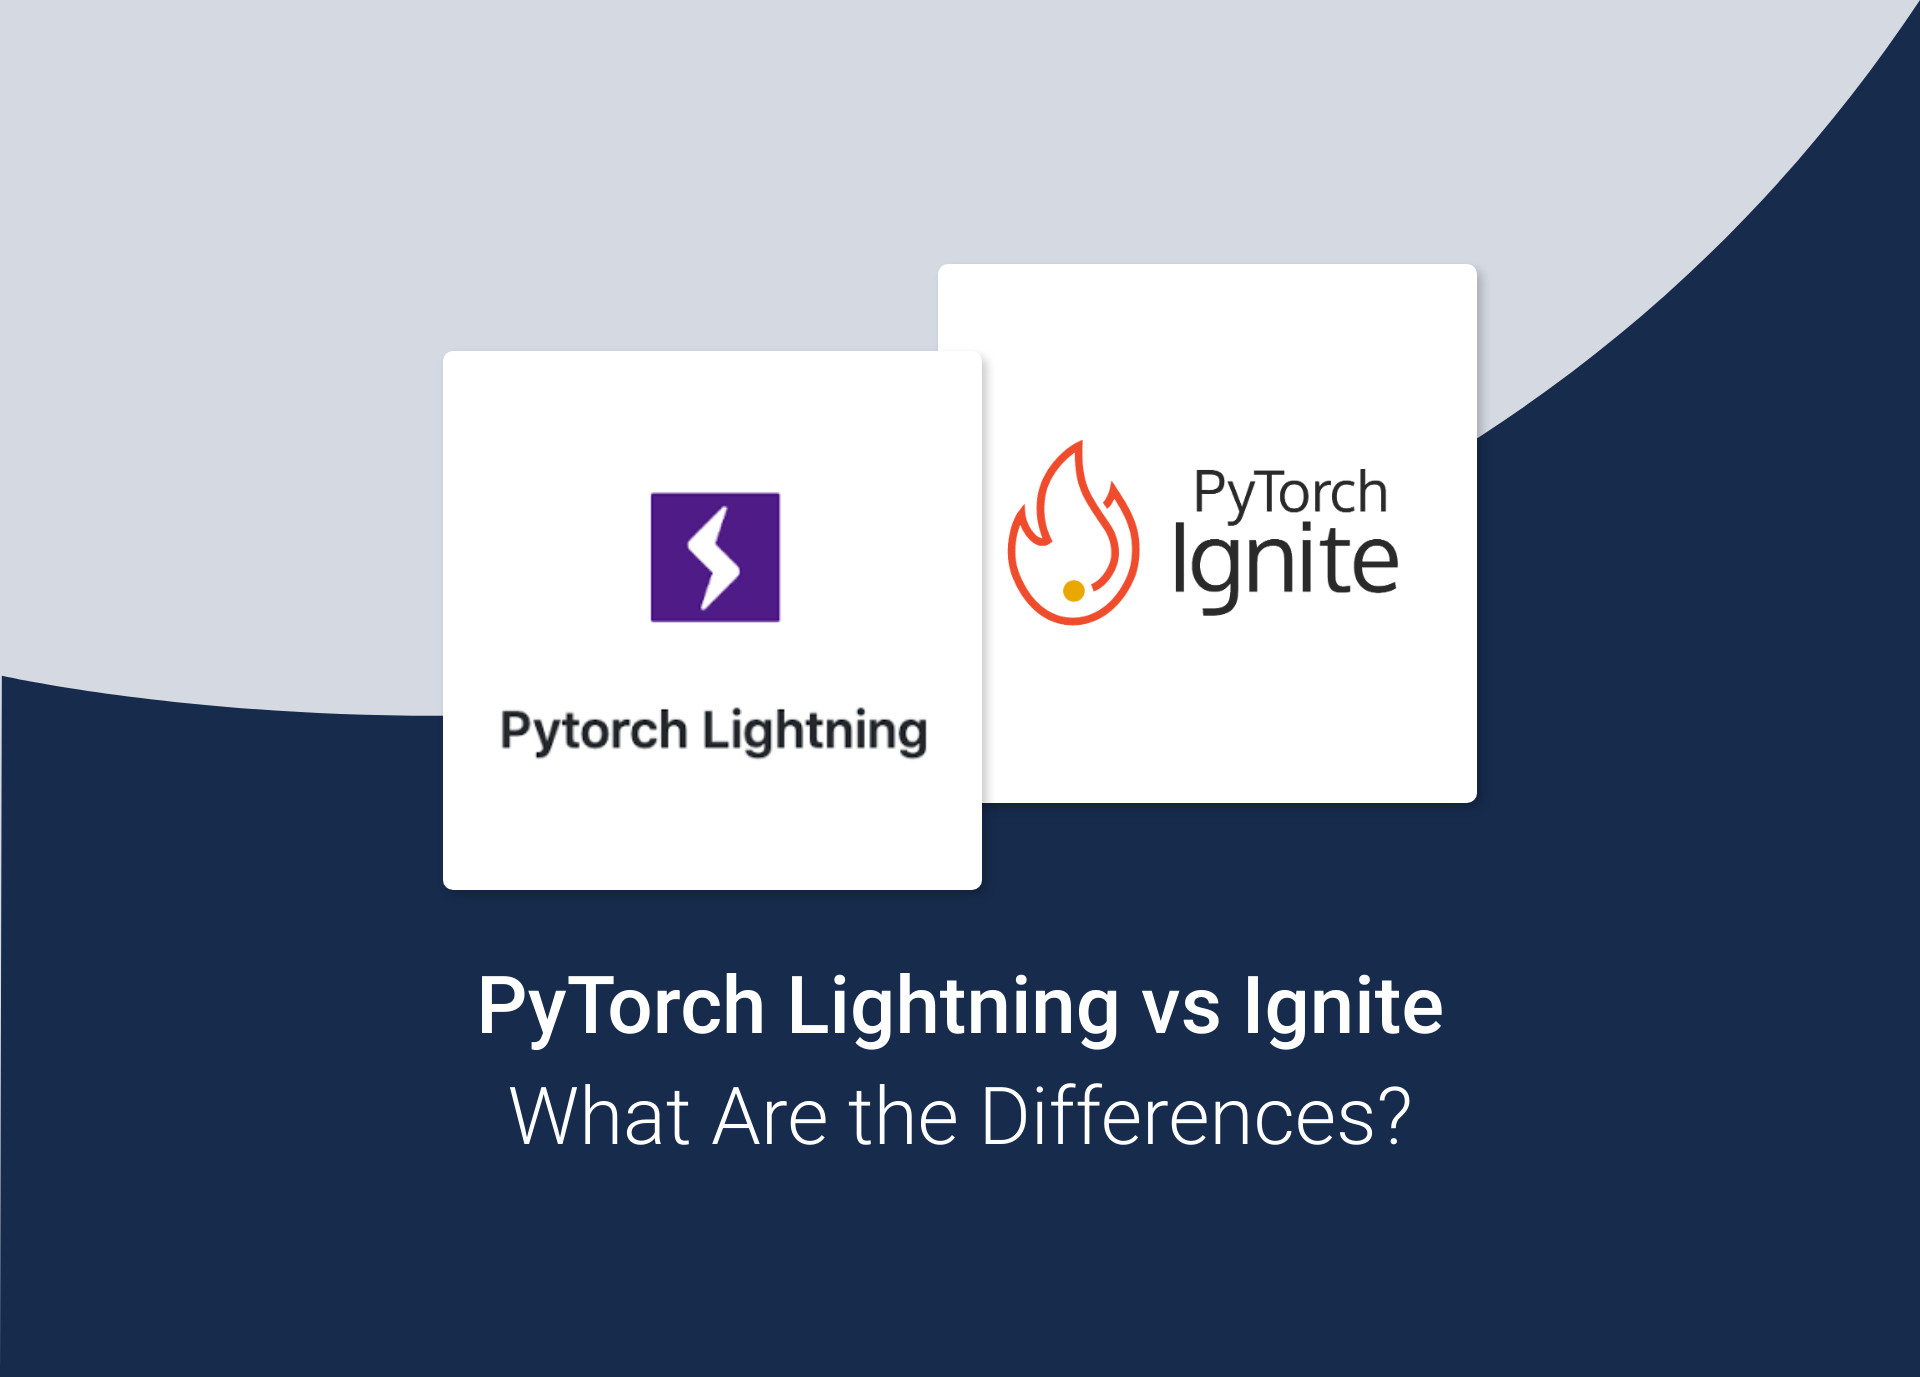 PyTorch Lightning vs Ignite: What Are the Differences?